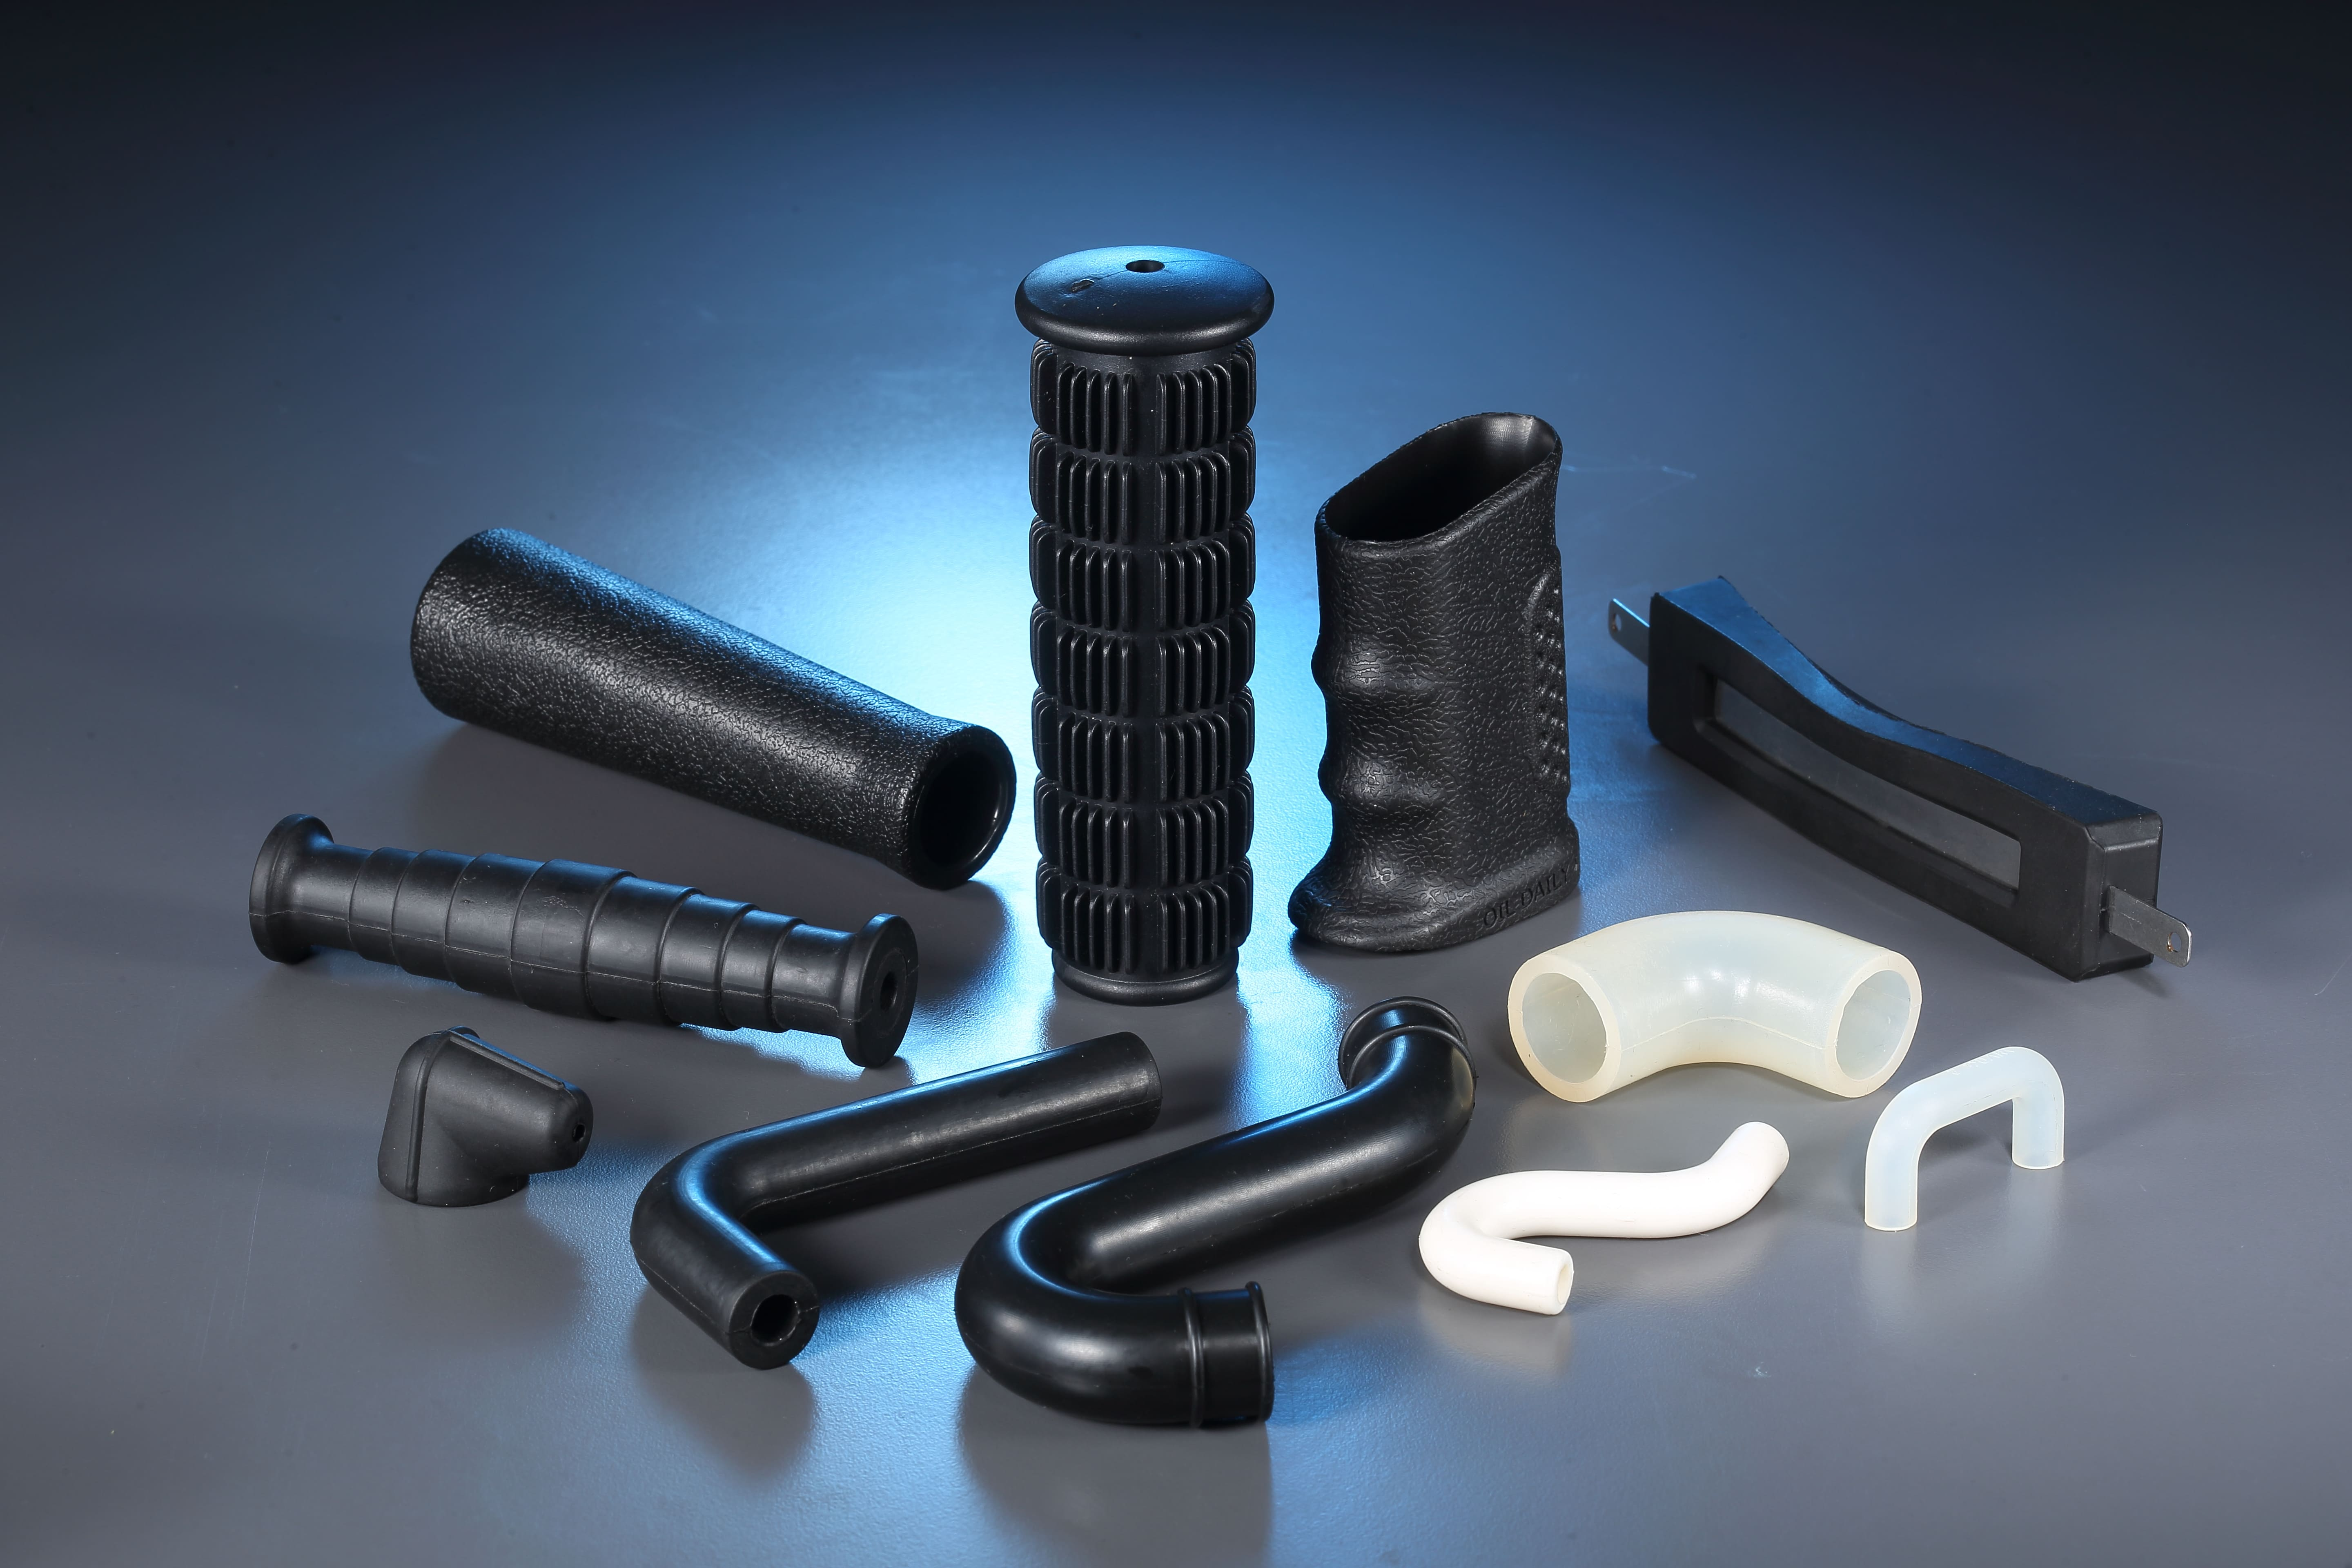 Bus Robber elbow pipe for Rubber, Plastic Parts made by Yee Ming Ying Co., LTD. 昱銘穎有限公司 - MatchSupplier.com